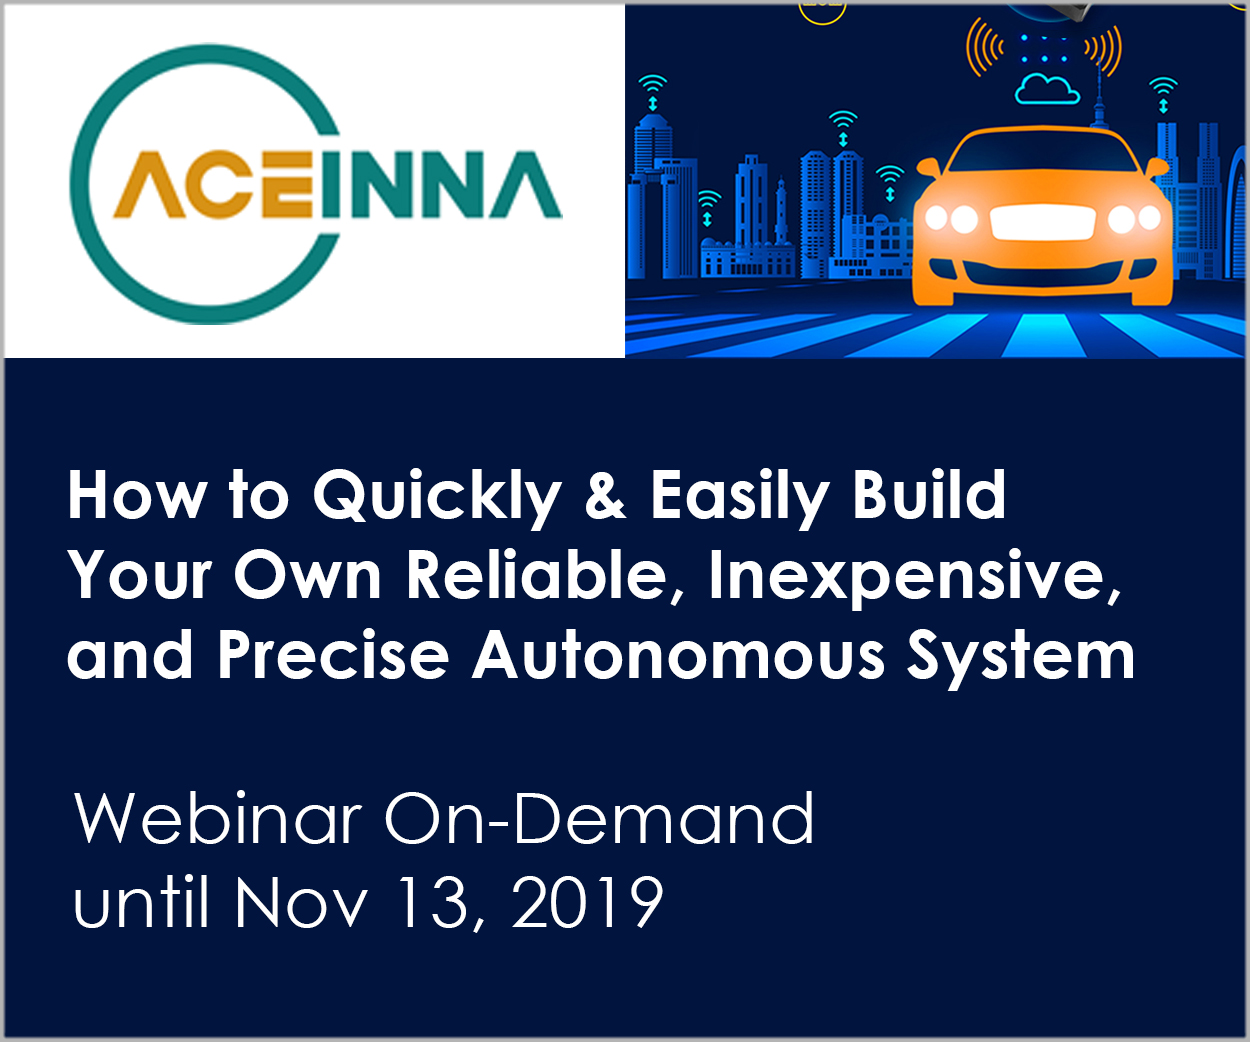 Aceinna Teams Up With Ieee For A Special Webinar For Developers Of Drones Robots And Agvs What S New In Electronics